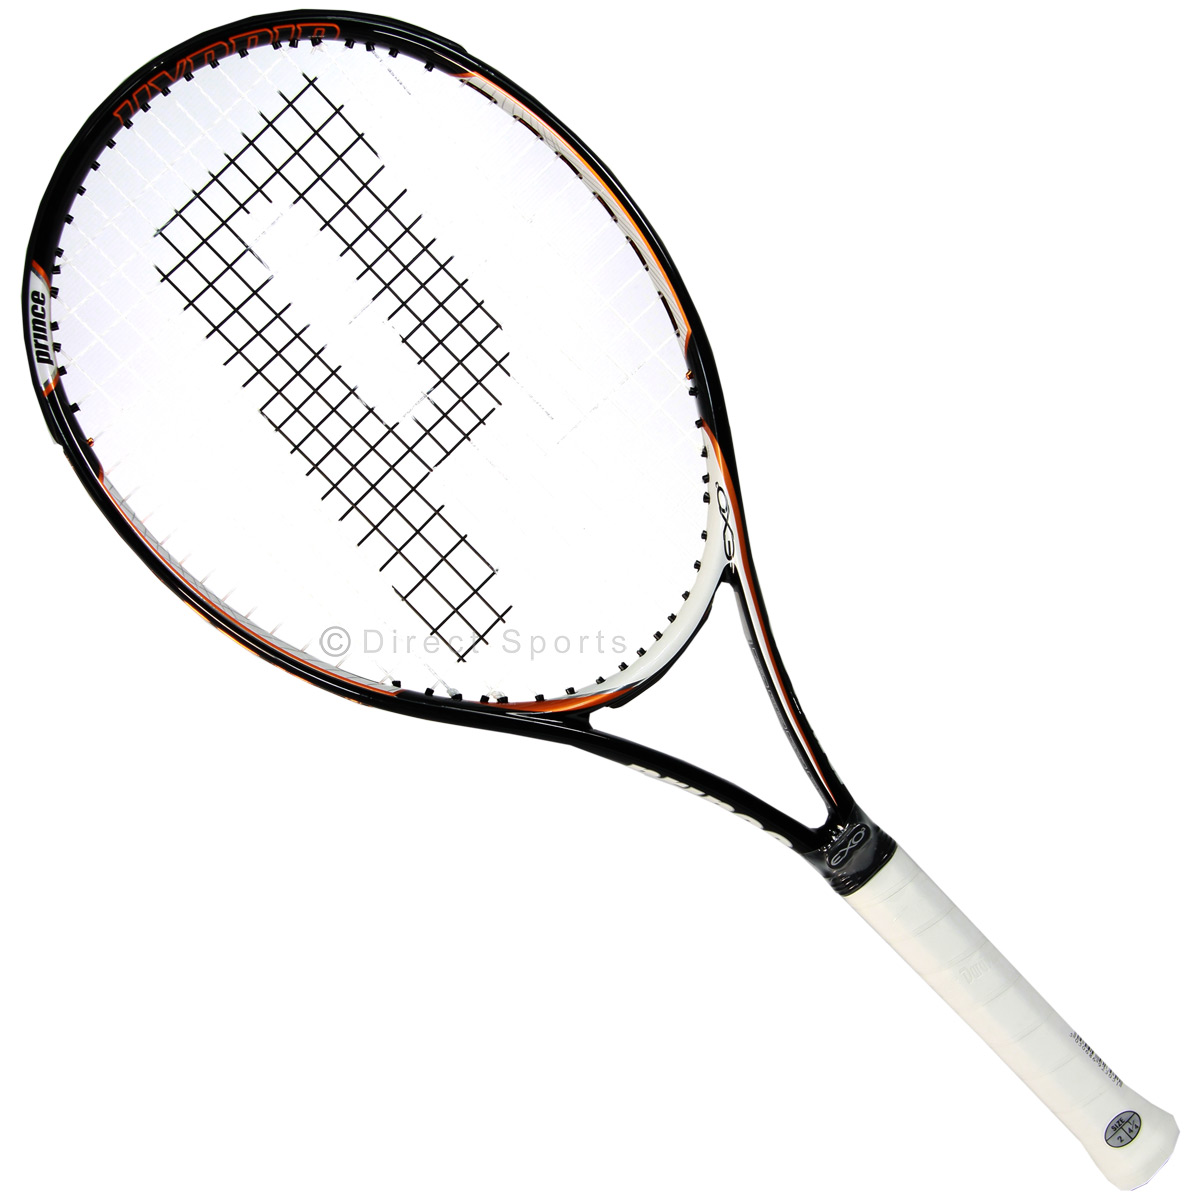 24 picture of tennis racquet free cliparts that you can download to ...